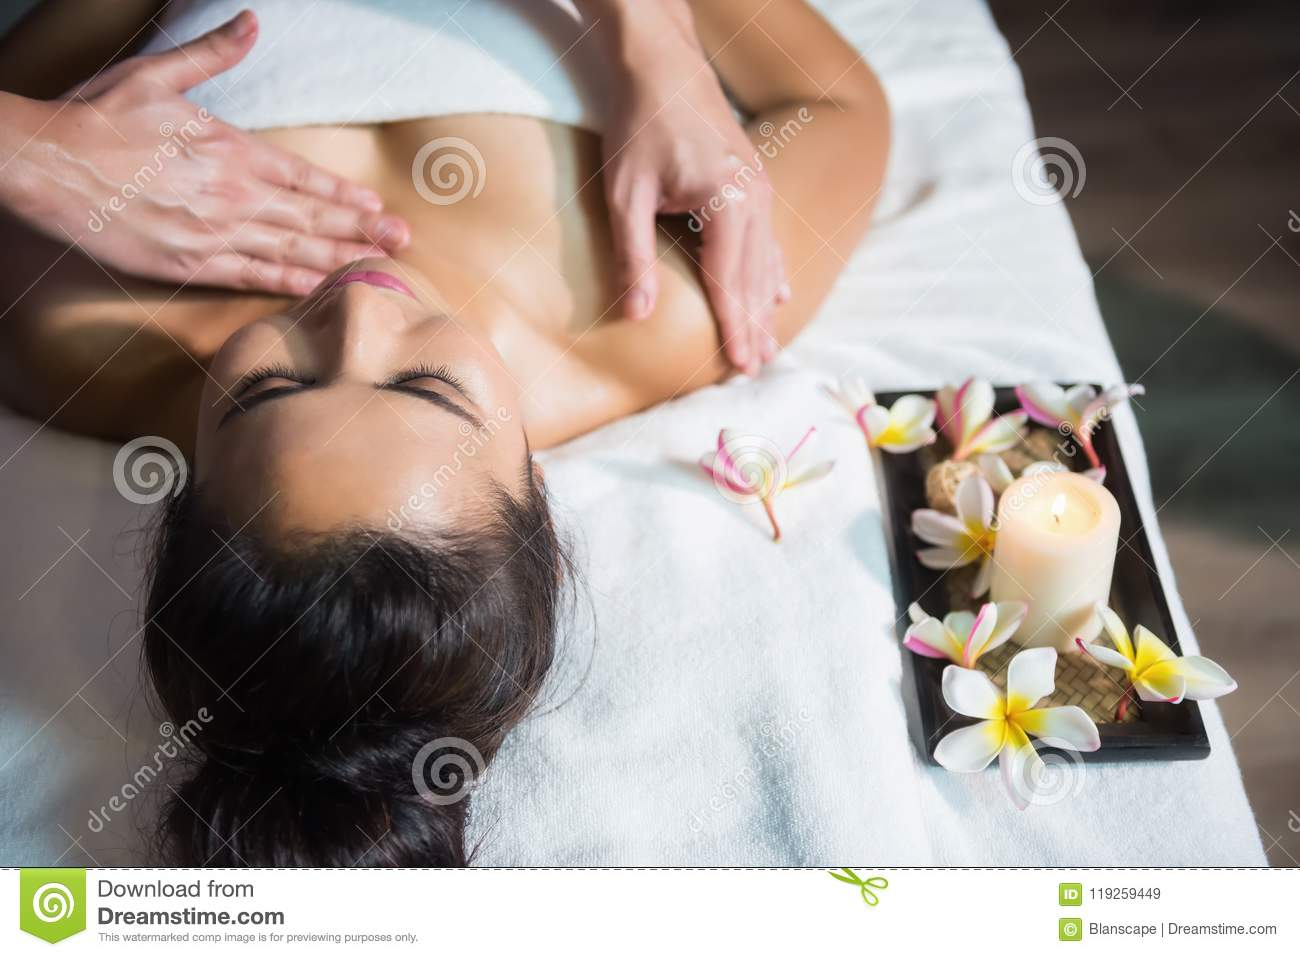 Thai Oil Massage To Asian Girl Stock Image - Image of